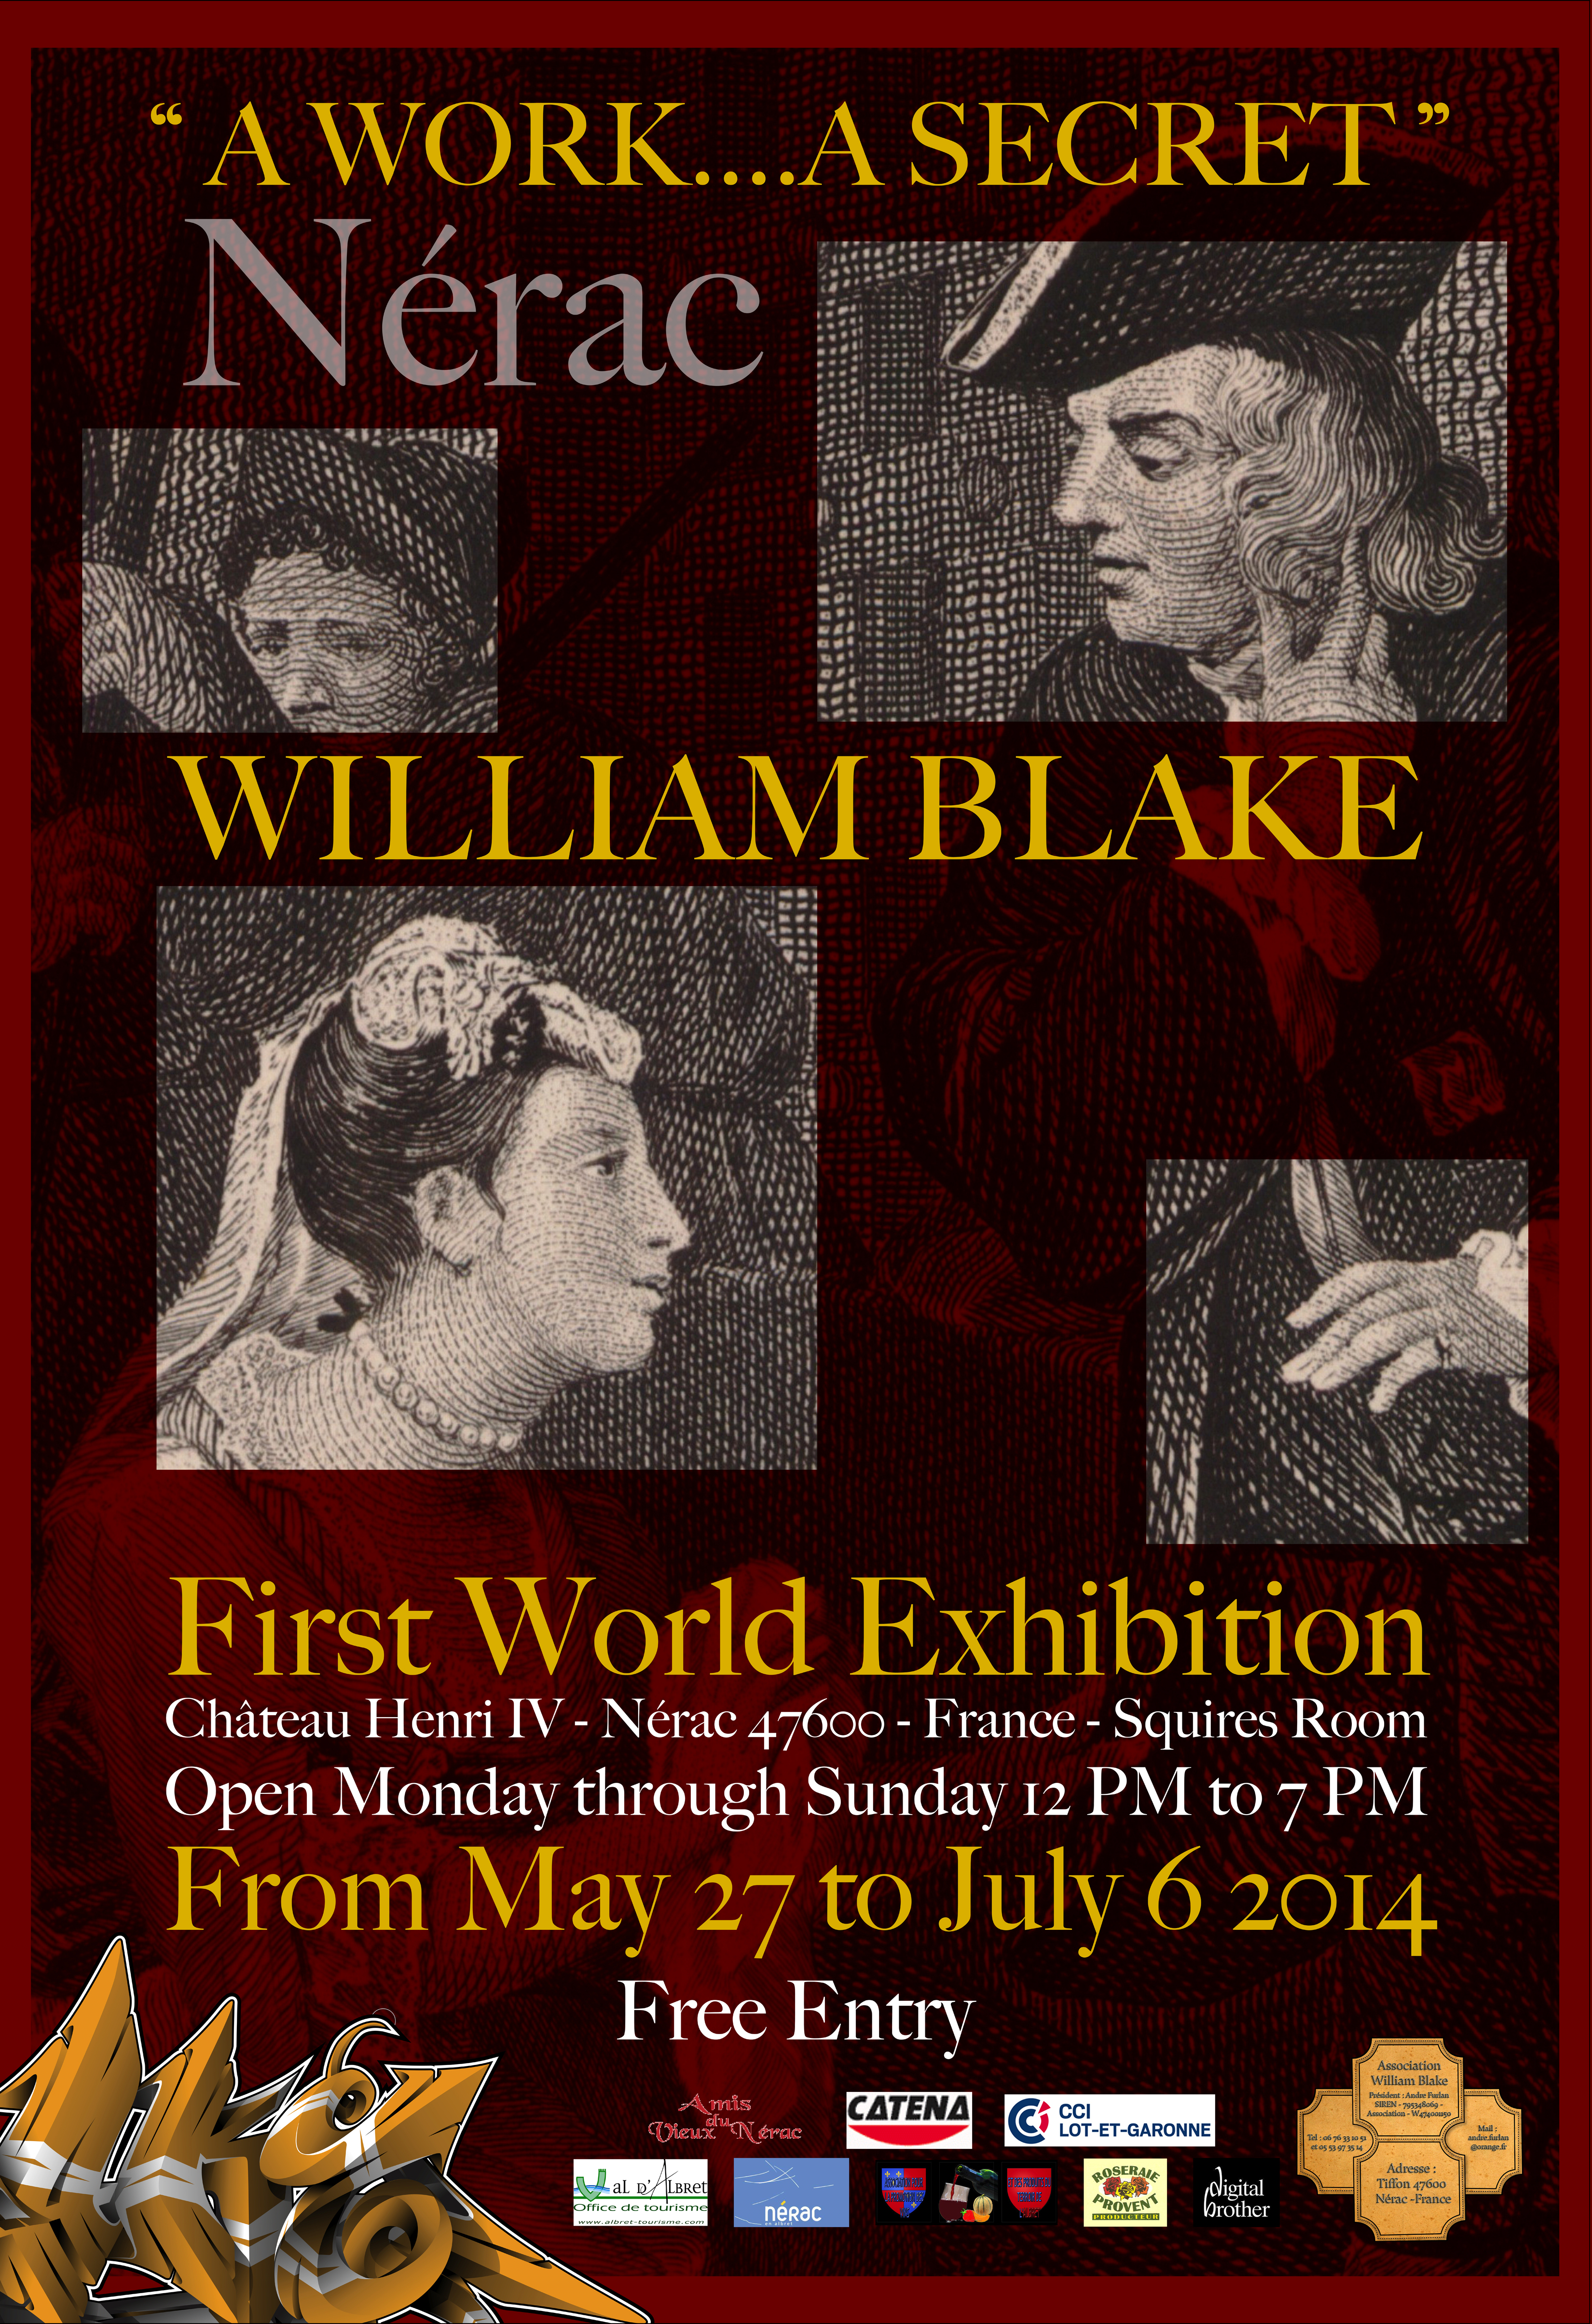 Poster for William Blake Exposition Premiere Mondiale Chateau Henri IV Nerac 47600 France Salle Des Ecuyers